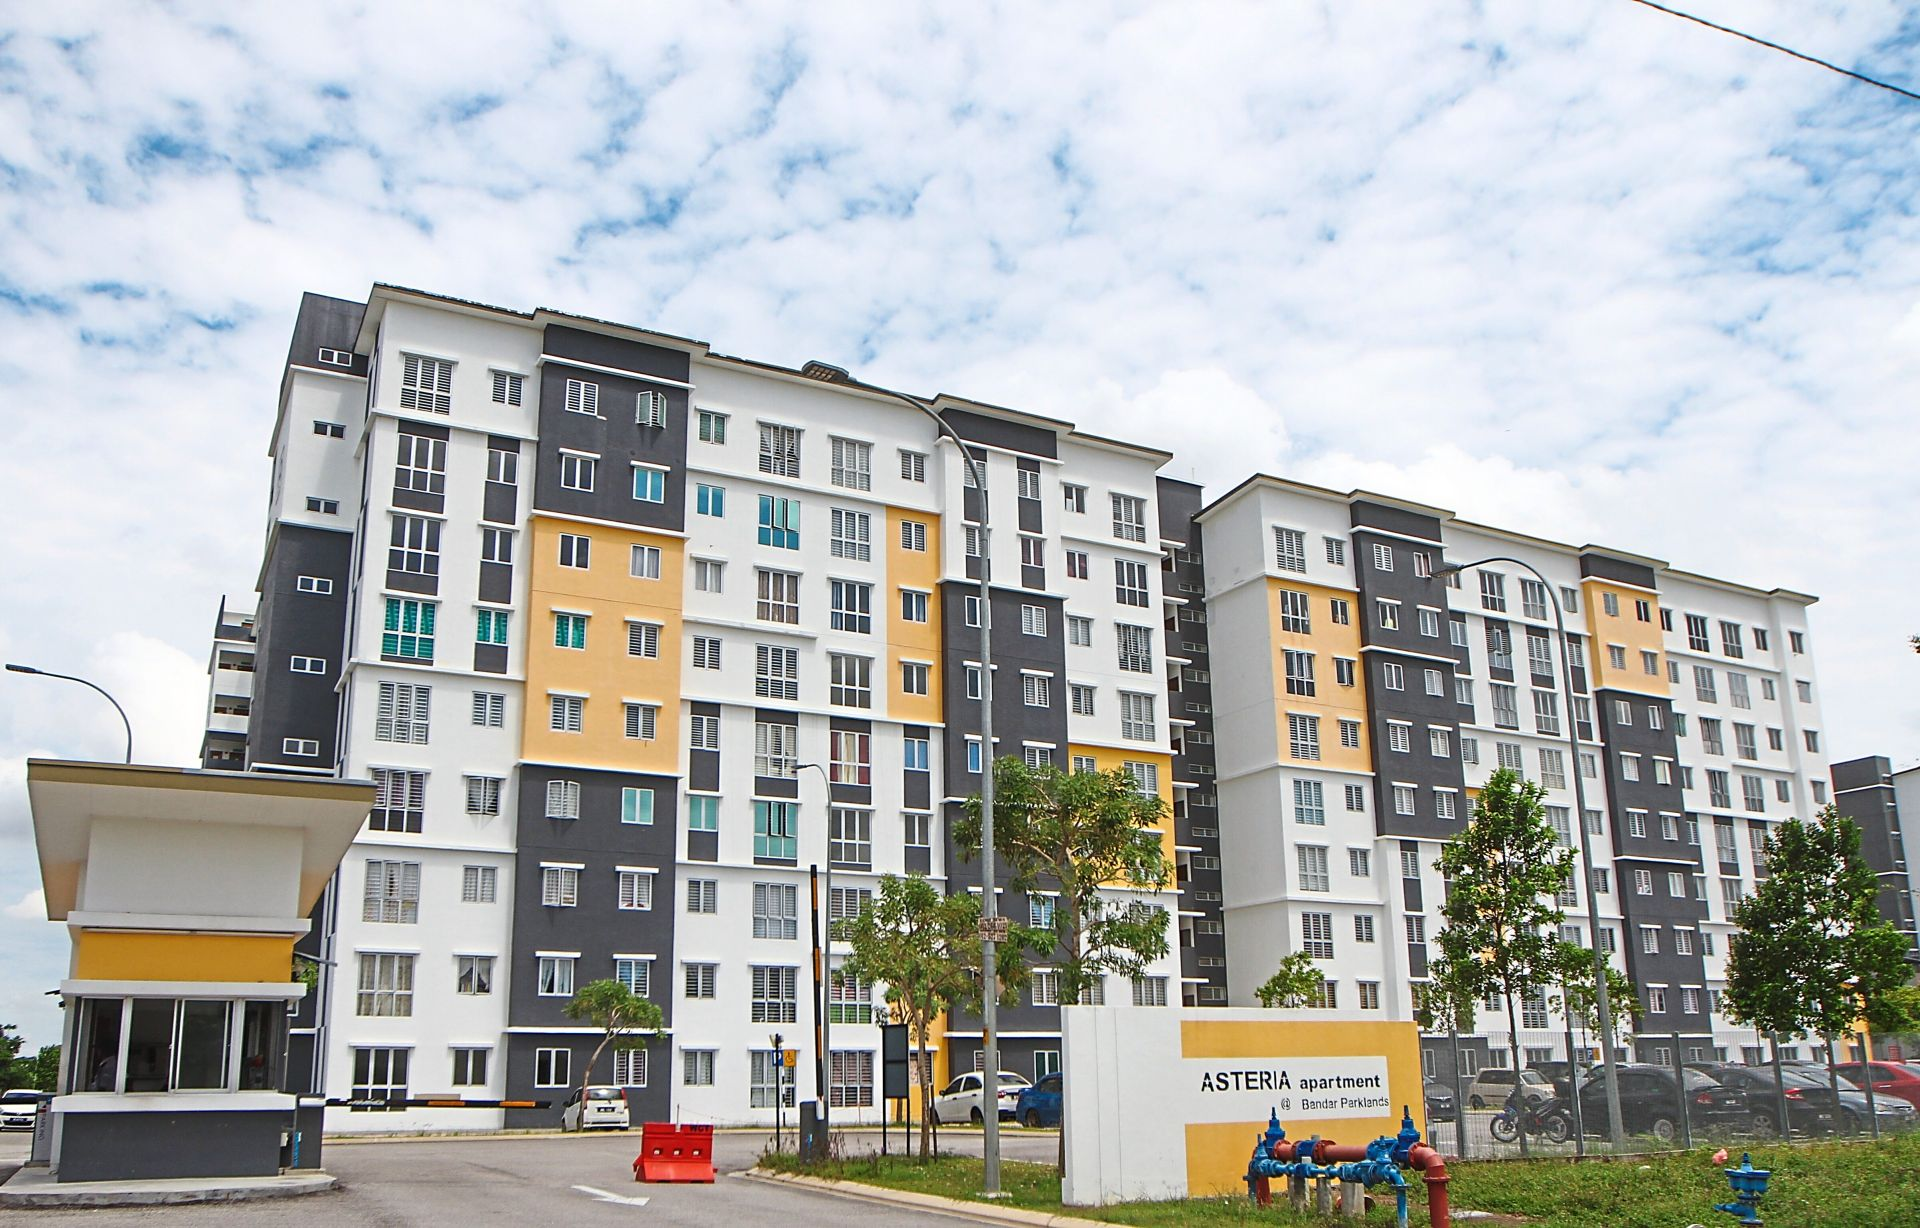 Another heavily advertised property is Asteria Apartment in Bandar Parklands, Klang, which is under the RSKu scheme.